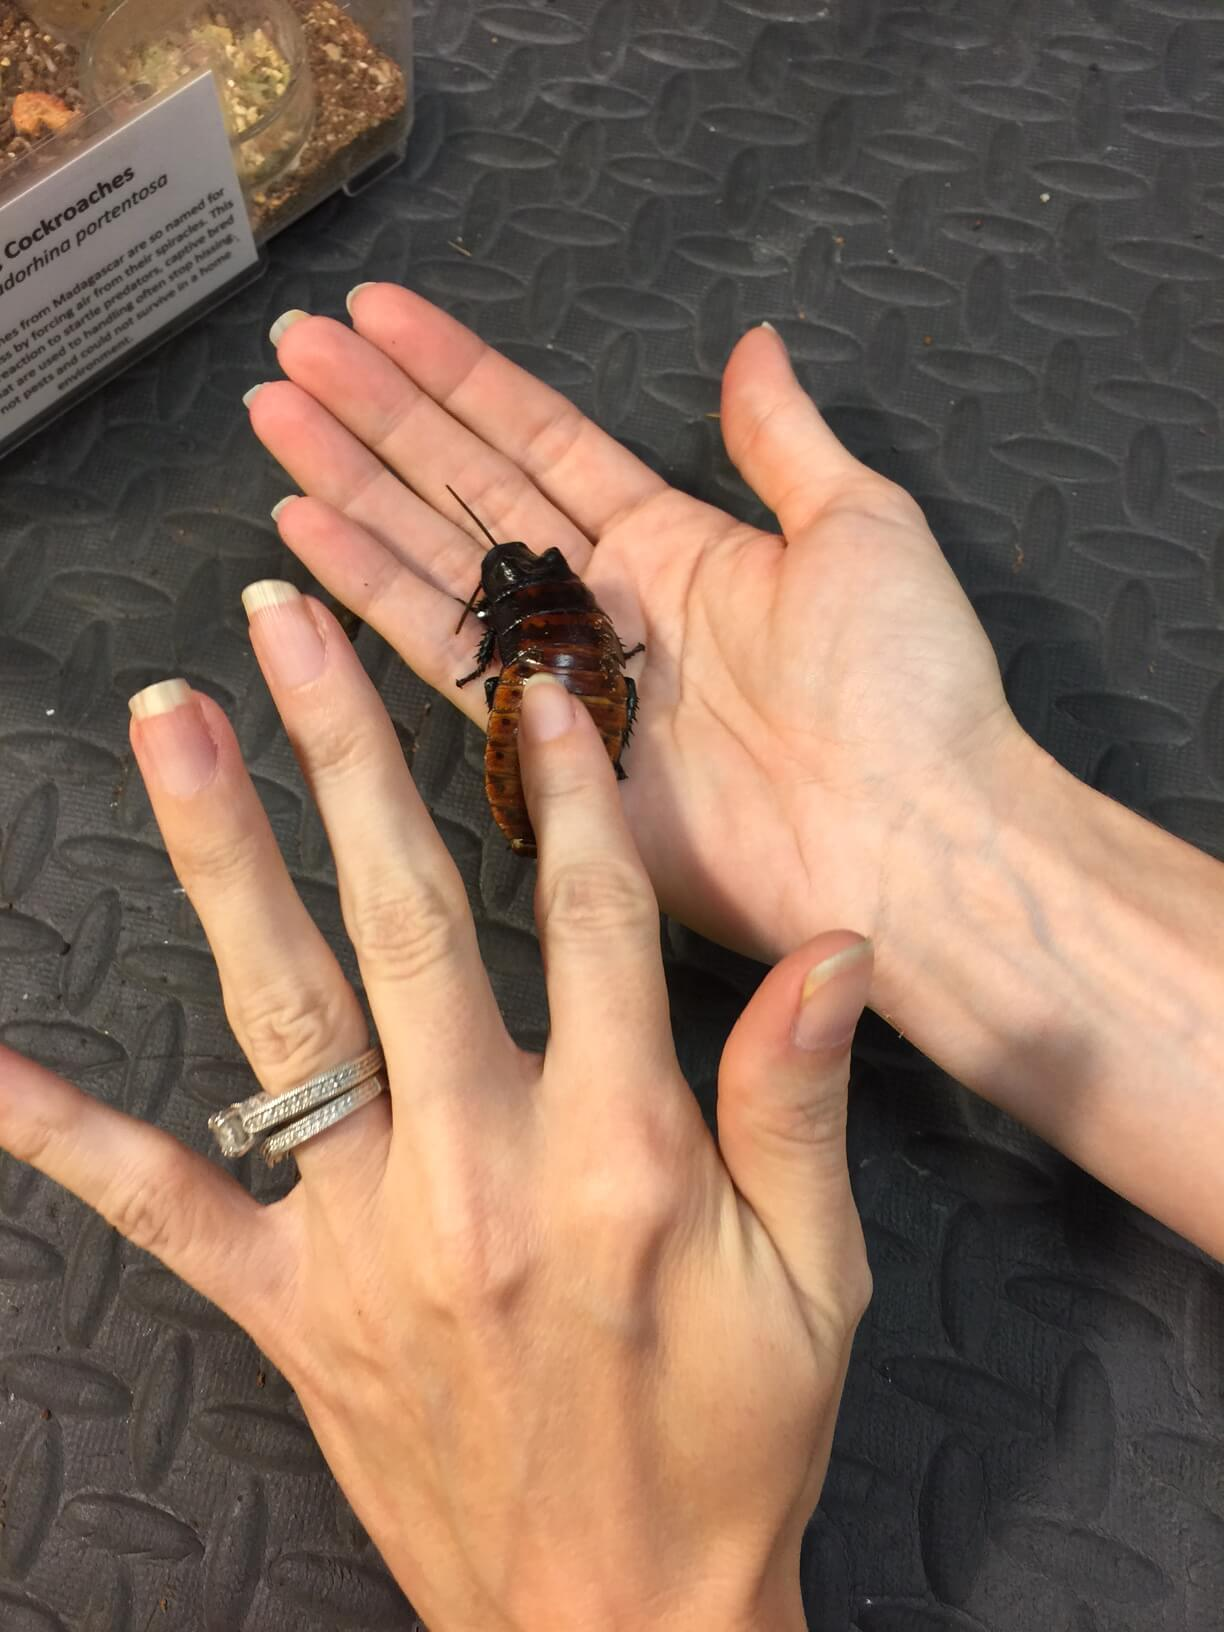 Meh, I've seen roaches 10 times this big in Texas.